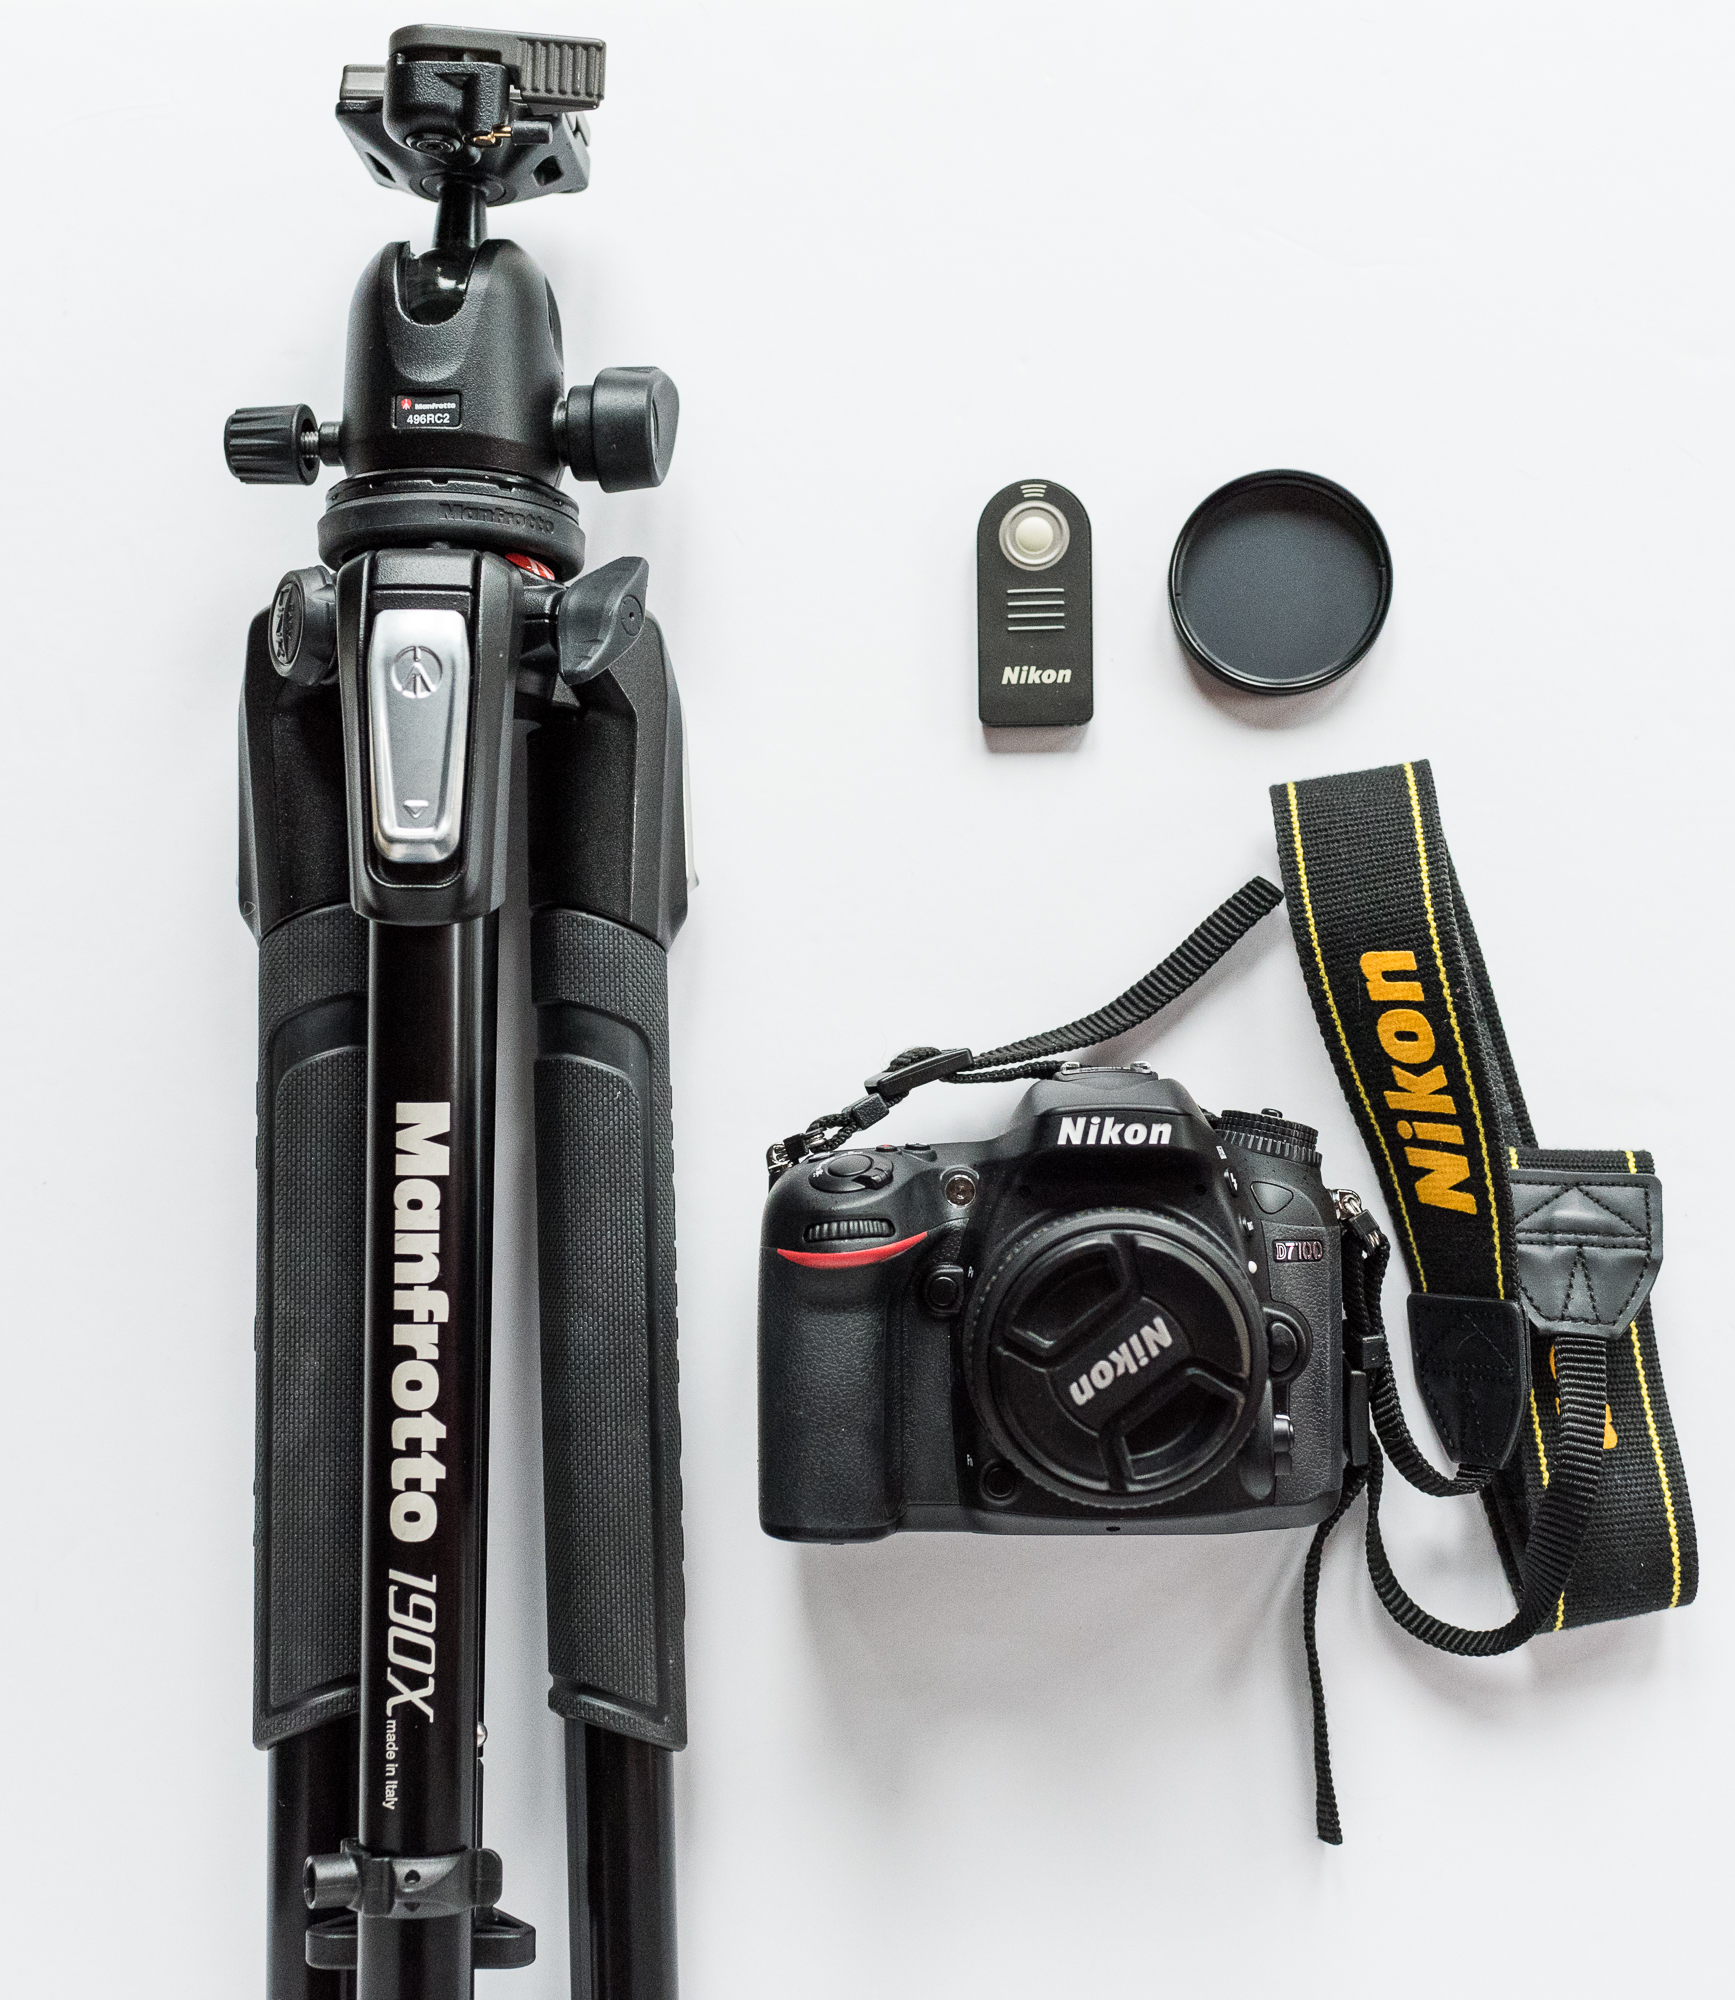 Sample photo essentials: Nikon D7100 cropped sensor DSLR, with a 50mm f1.8 lens, a wireless remote, polarizing filter, and a sturdy Manfrotto tripod.